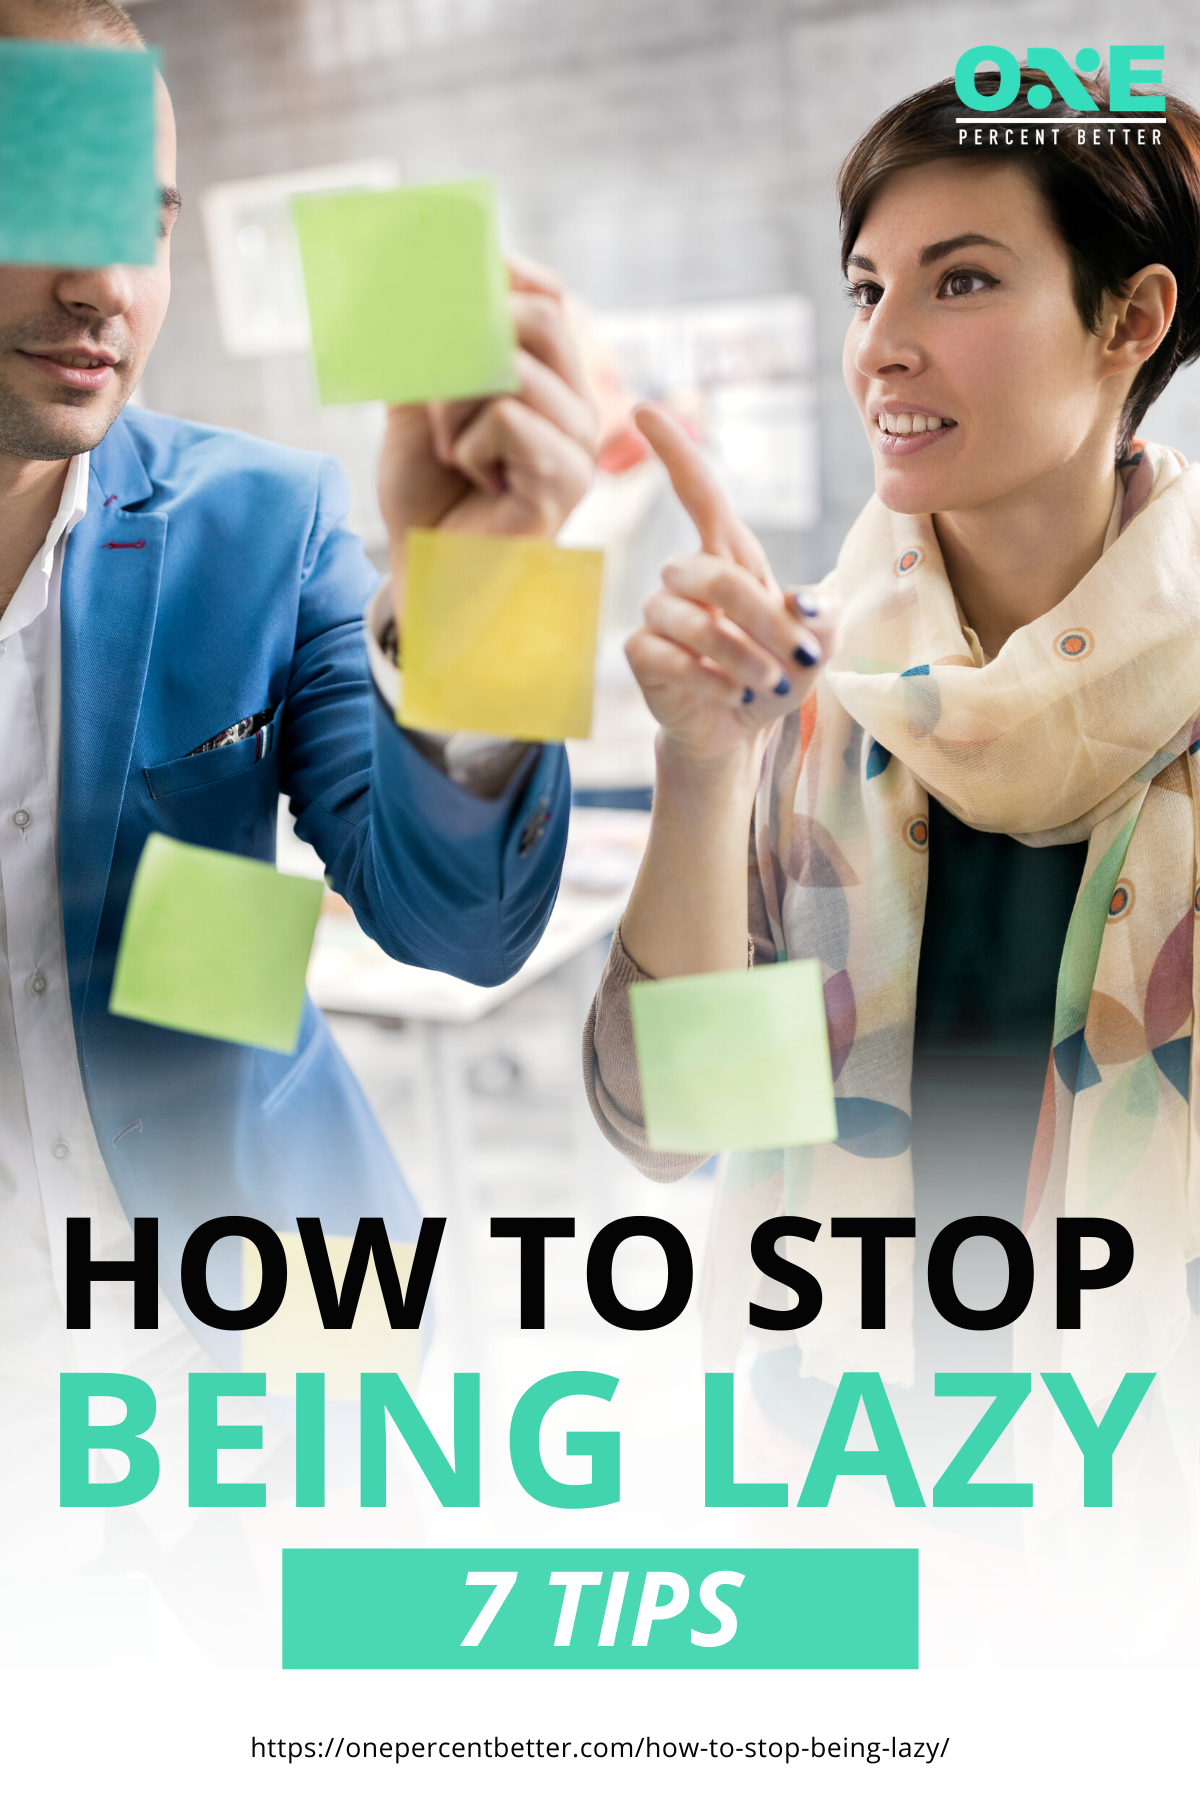 How To Stop Being Lazy: 7 Tips | https://onepercentbetter.com/how-to-stop-being-lazy/